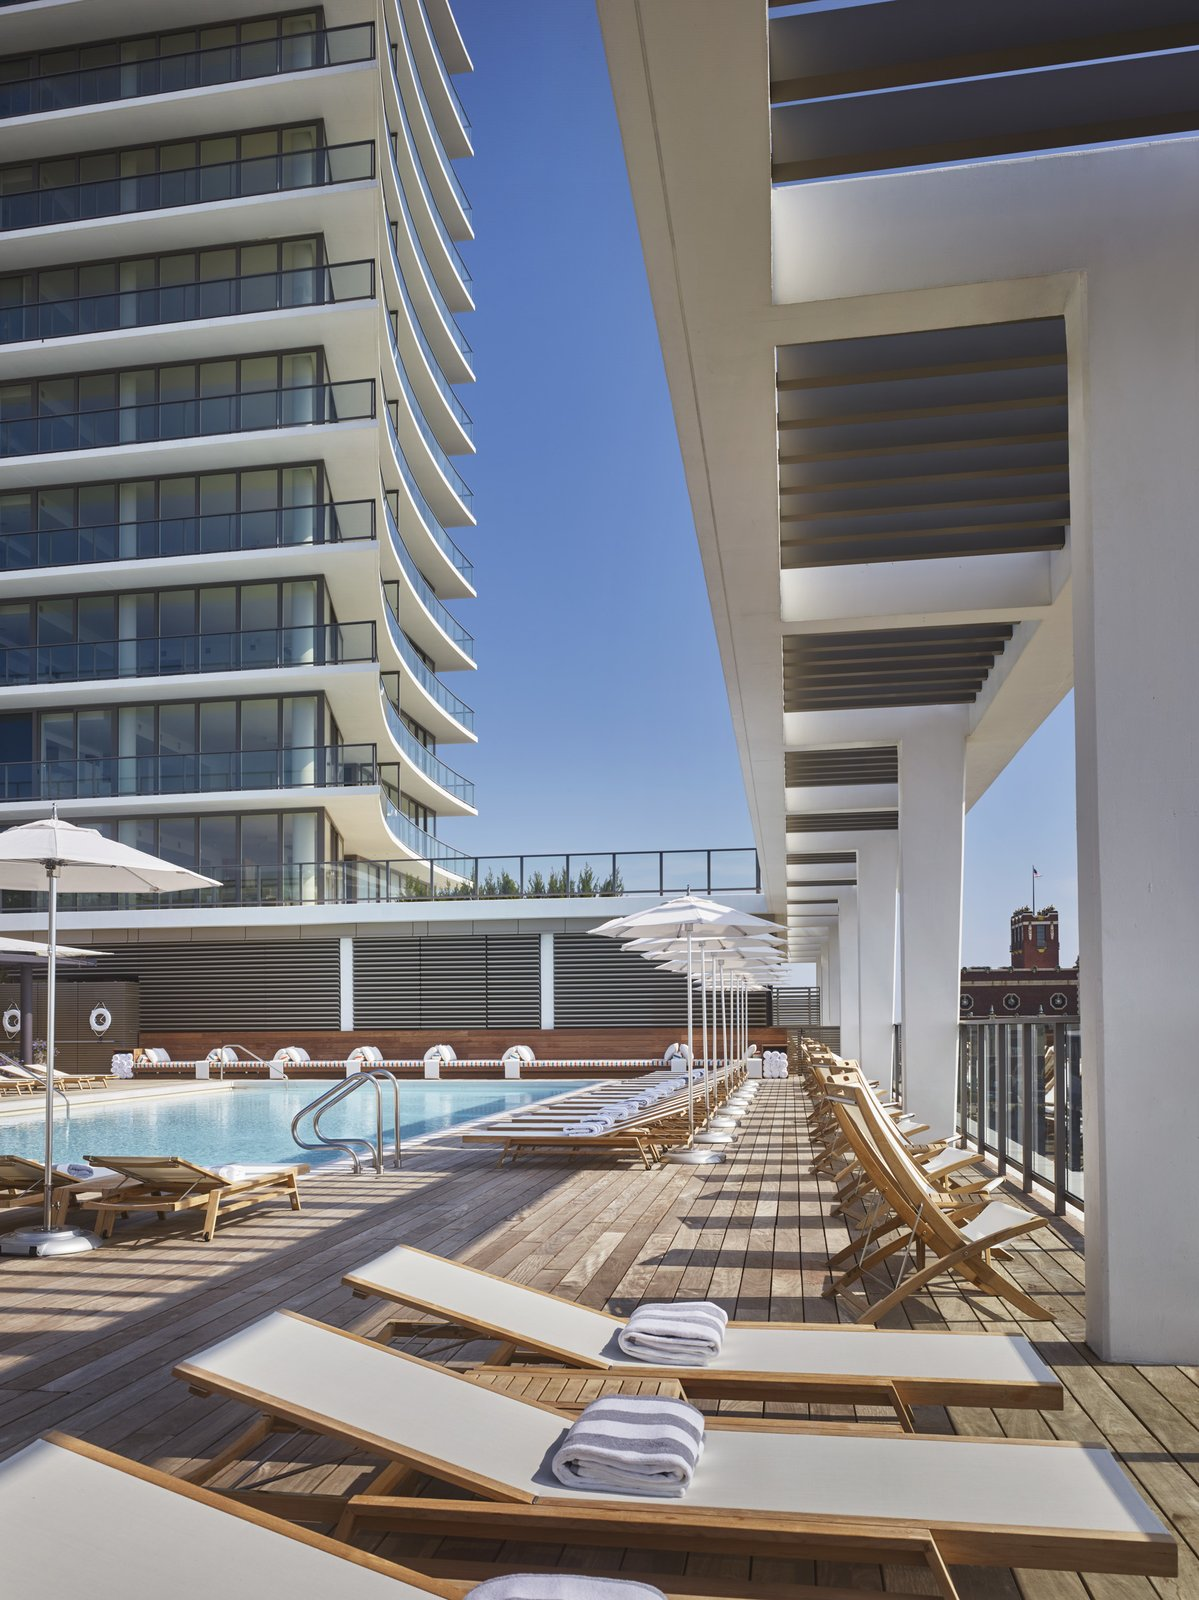 Outdoor, Large Patio, Porch, Deck, Swimming Pools, Tubs, Shower, Large Pools, Tubs, Shower, and Wood Patio, Porch, Deck Teak lounges and chairs surround the pool area, which overlooks the ocean. The residential tower is visible in the background.  Asbury Ocean Club Hotel from A New Five-Star Hotel Gives the Jersey Shore an Upgrade